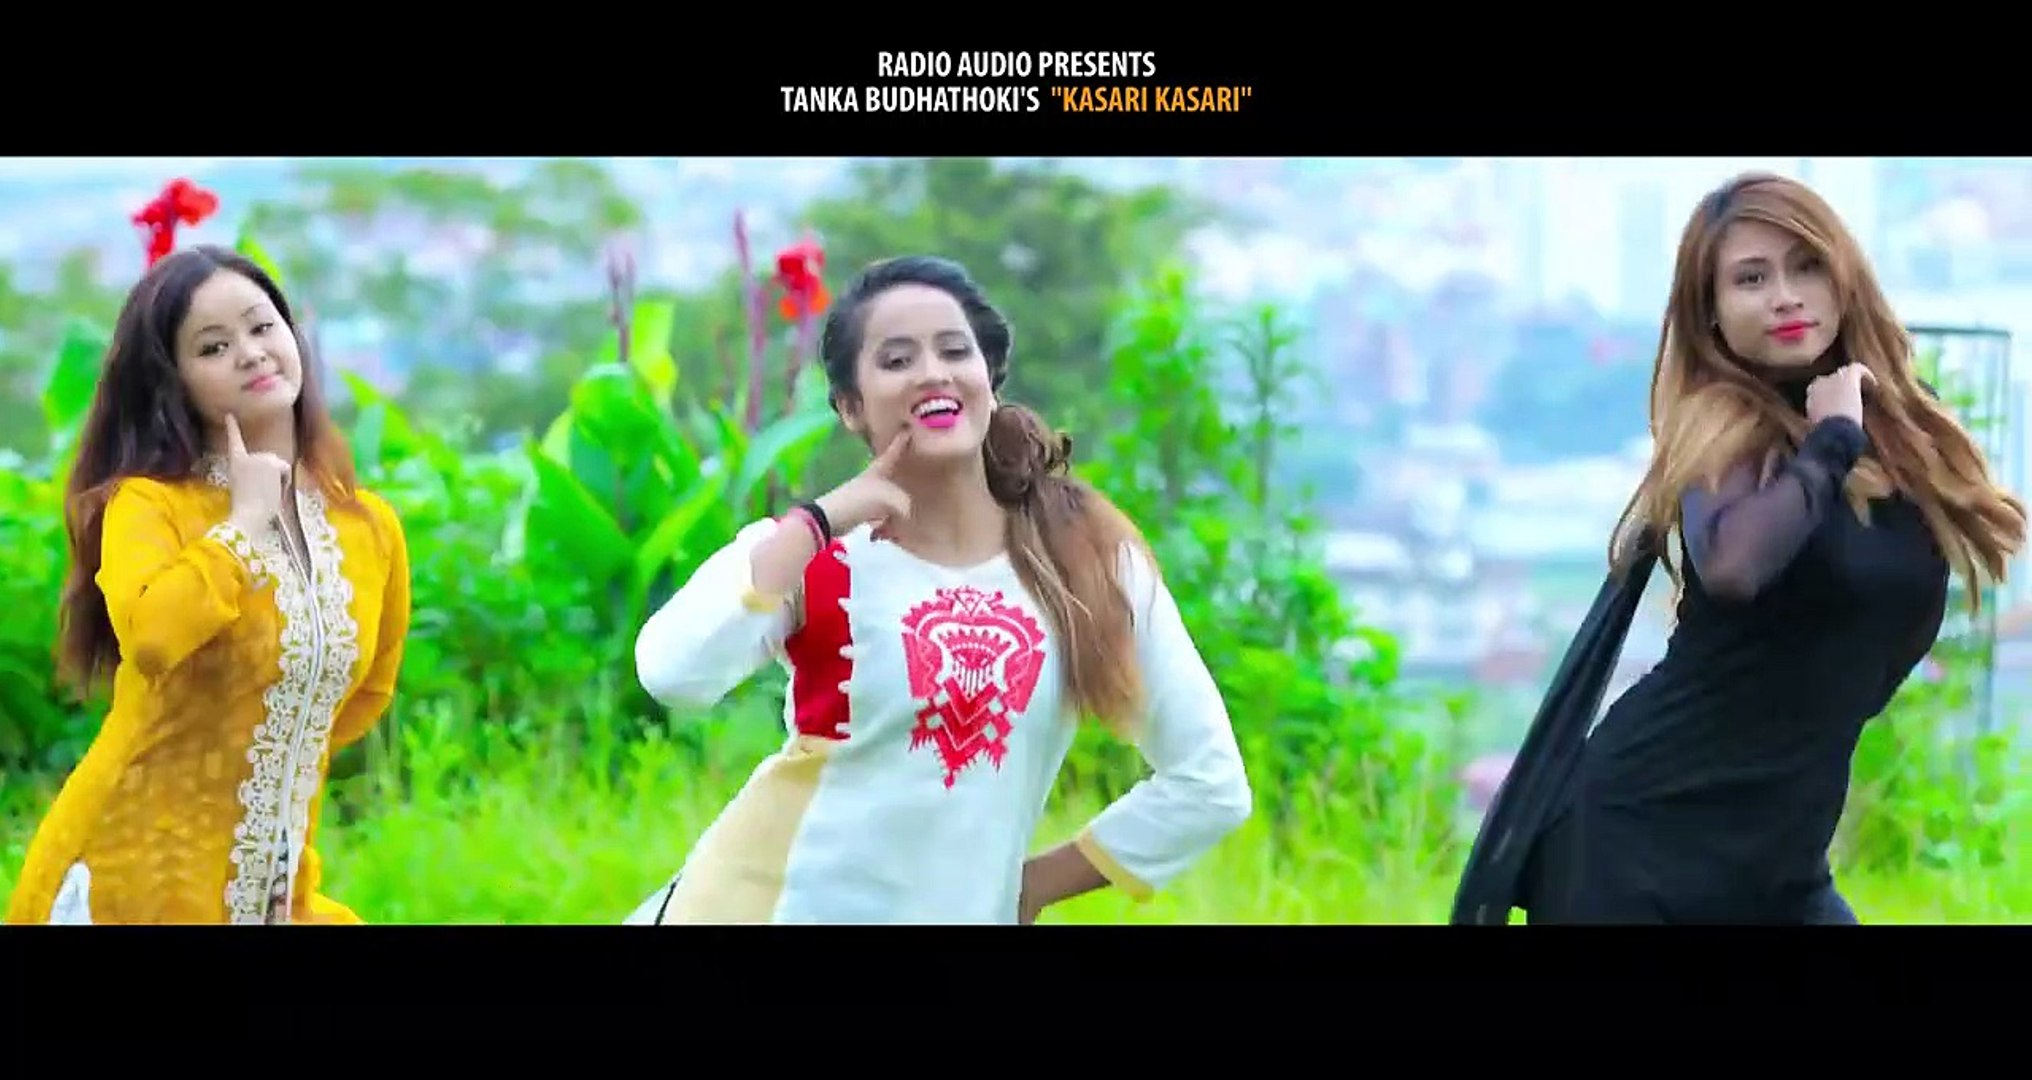 Latest Dancing Song by  Melina Rai _ 2020 TANKA BUDATHOKI_HD